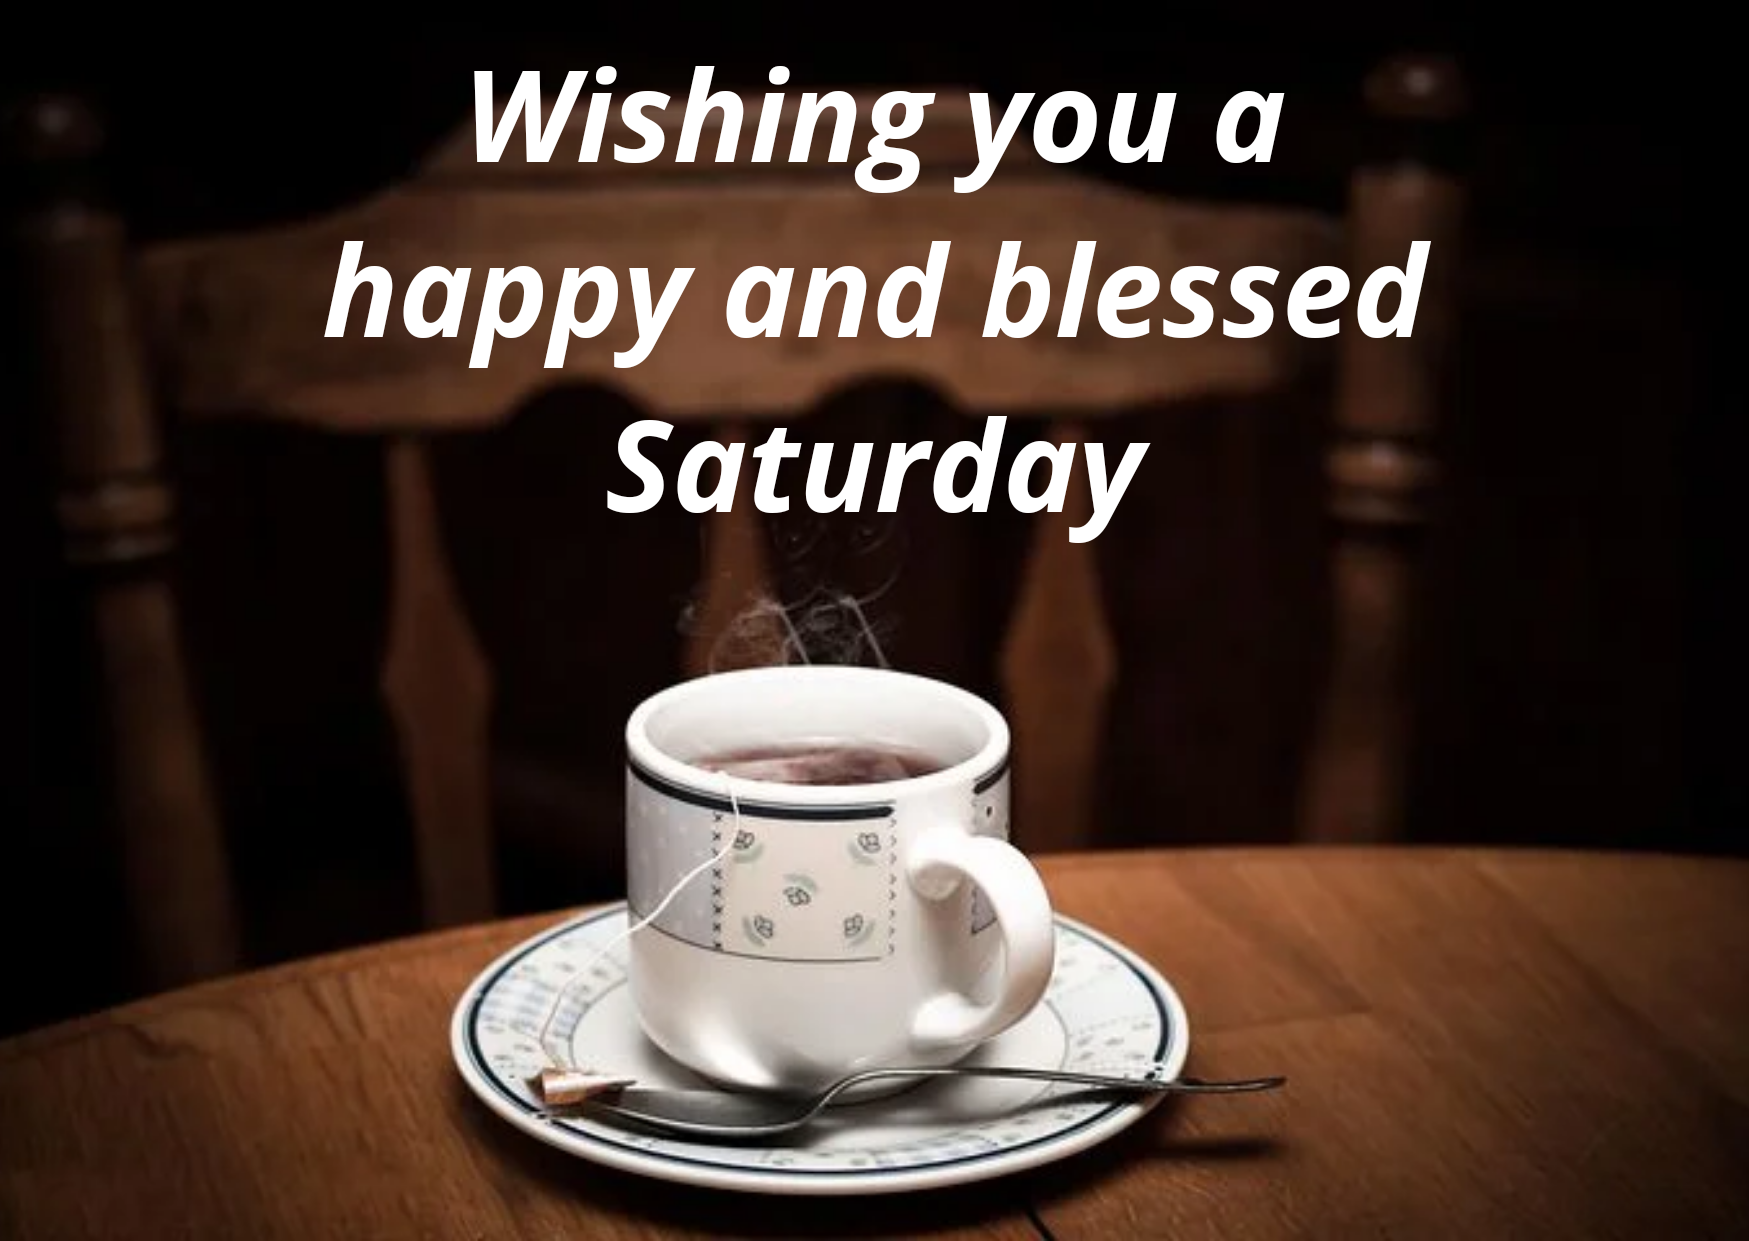 Happy Saturday  Wishes, Images, Wallpaper, Quotes, For Whatsapp, Free download,